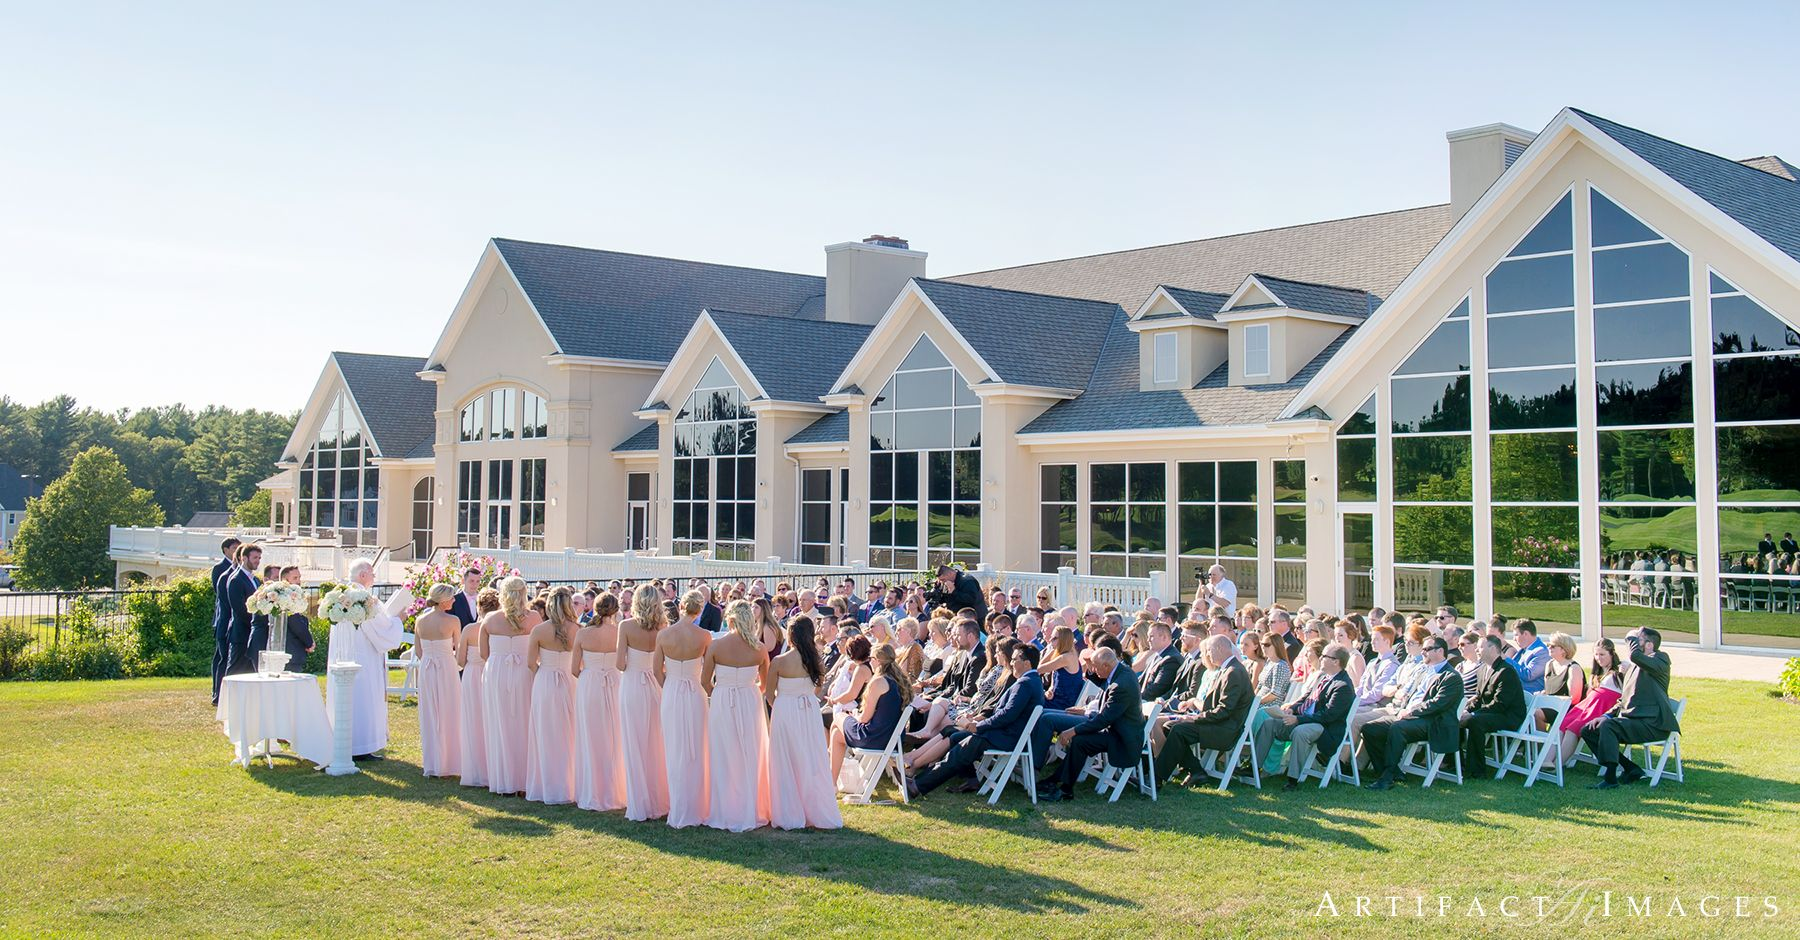 Wedding Ceremony At The Grand Indian Pond Country Club Kingston Ma Photography By Artifact Images Nh Me Serving All Of New